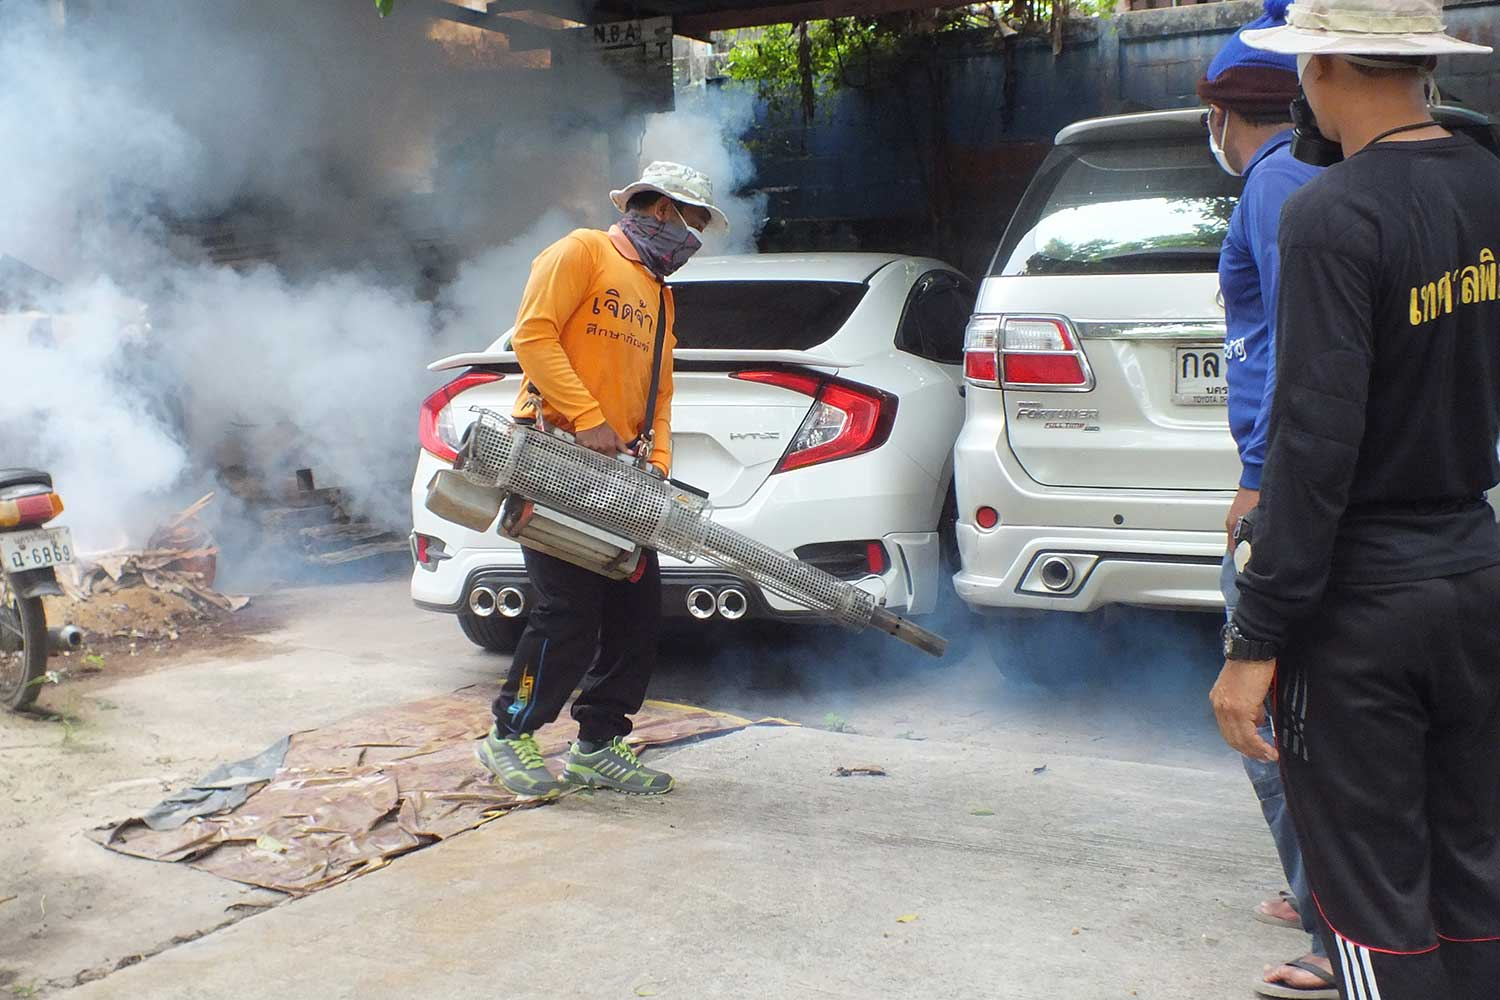 Workers spray insecticide fog to kill mosquitoes in Nakhon Ratchasima province, where  dengue fever has claimed two lives and sent 1,037 to hospital so far  this year. (Photo: Prasit Tangprasert)